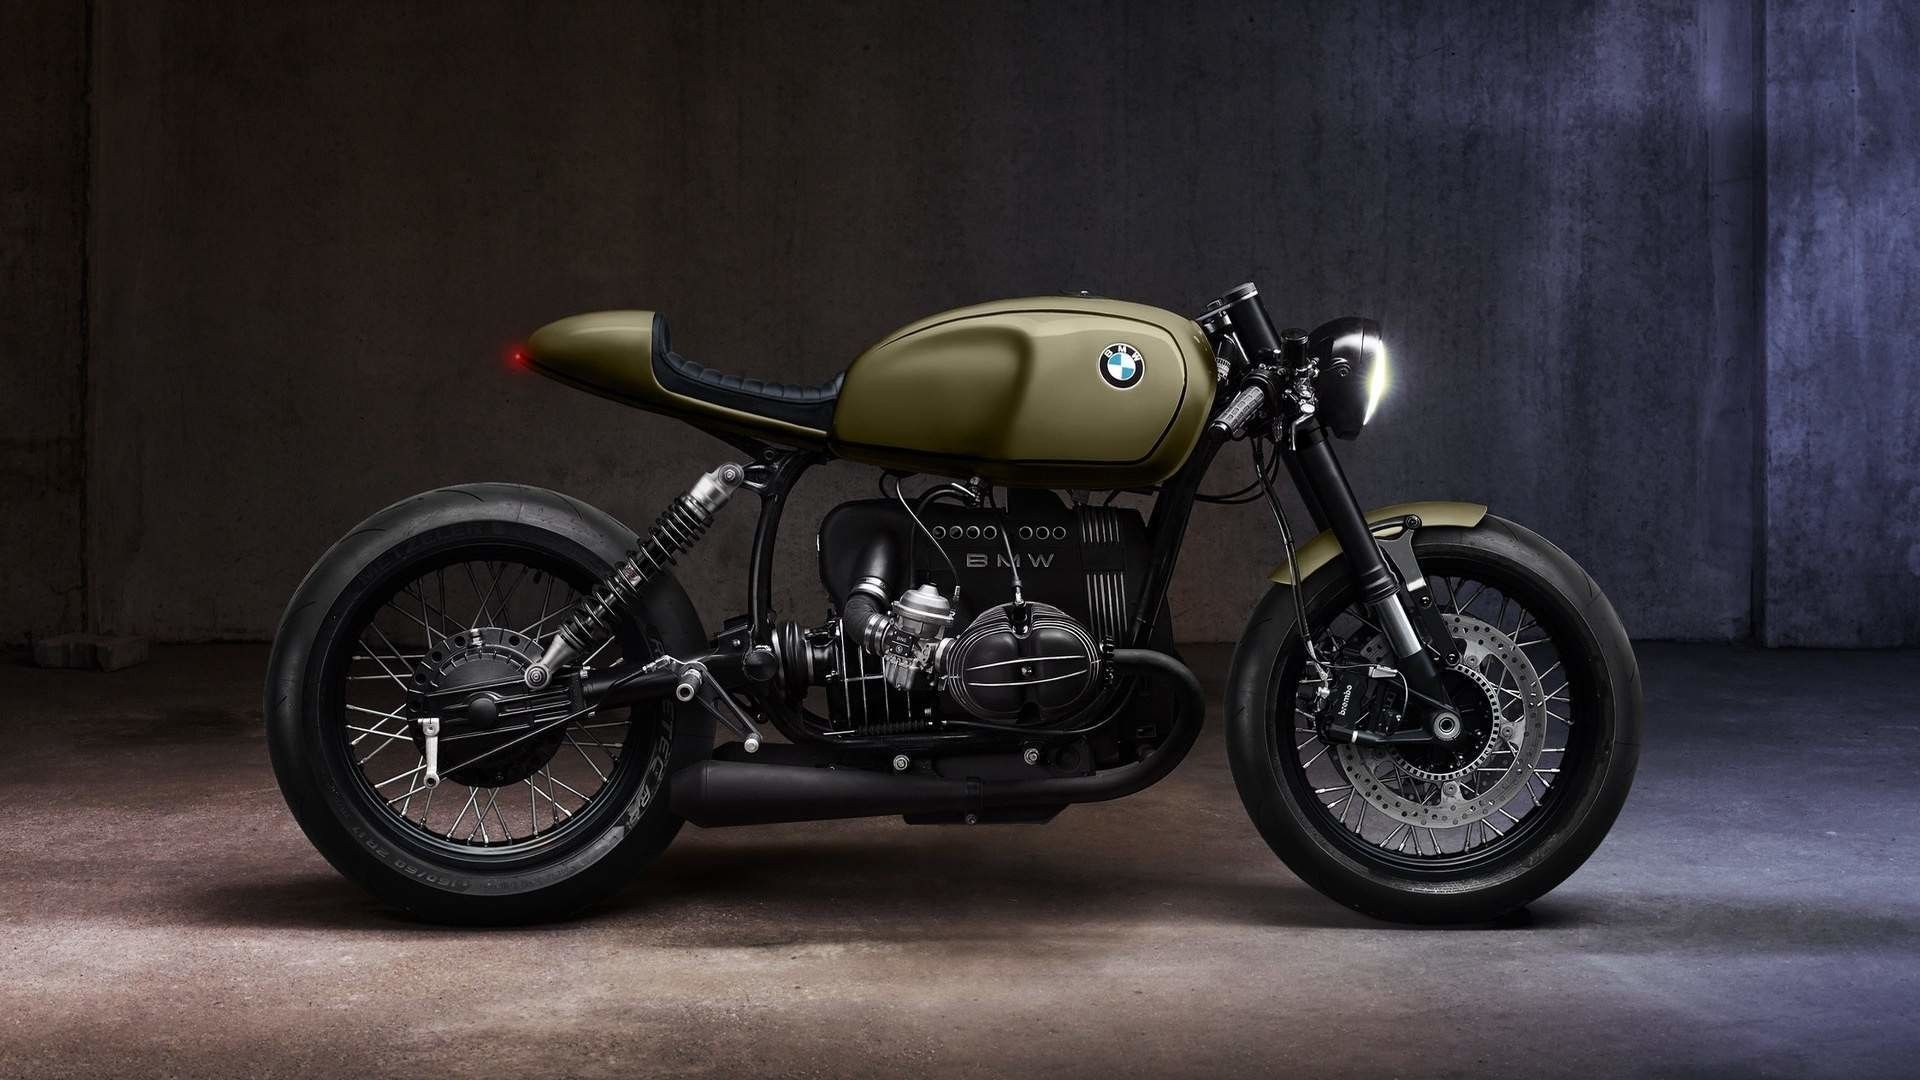 Cafe Racer HD Wallpapers - Top Free Cafe Racer HD Backgrounds